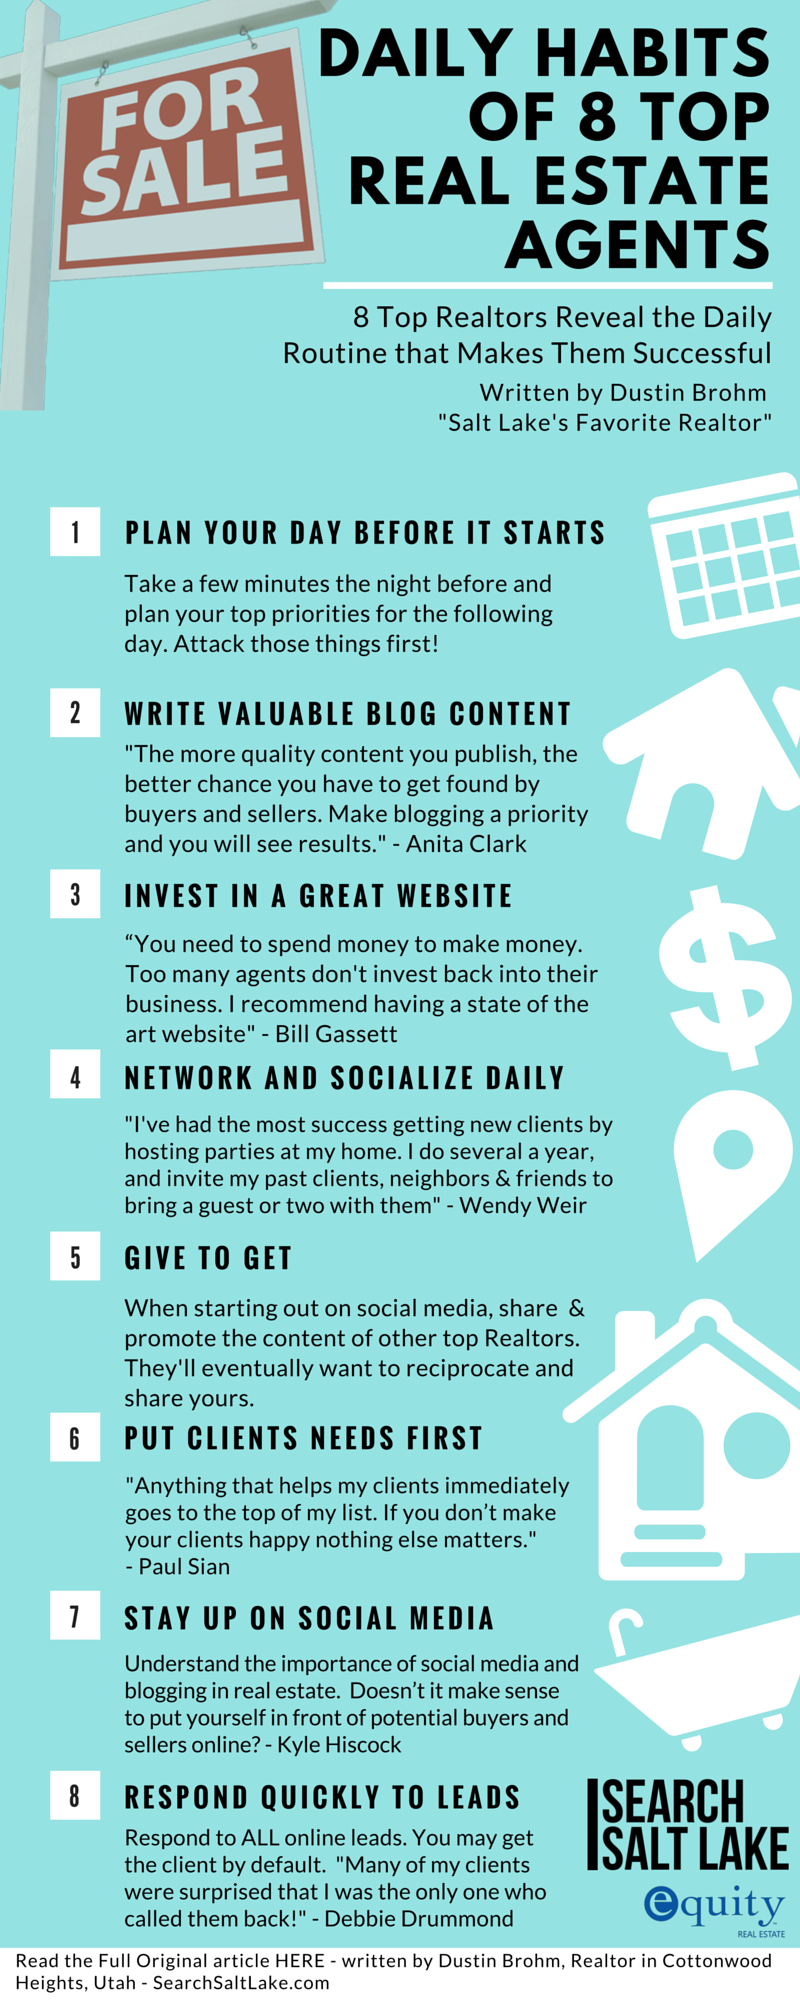 Daily Habits of Top Real Estate Agents- INFOGRAPHIC